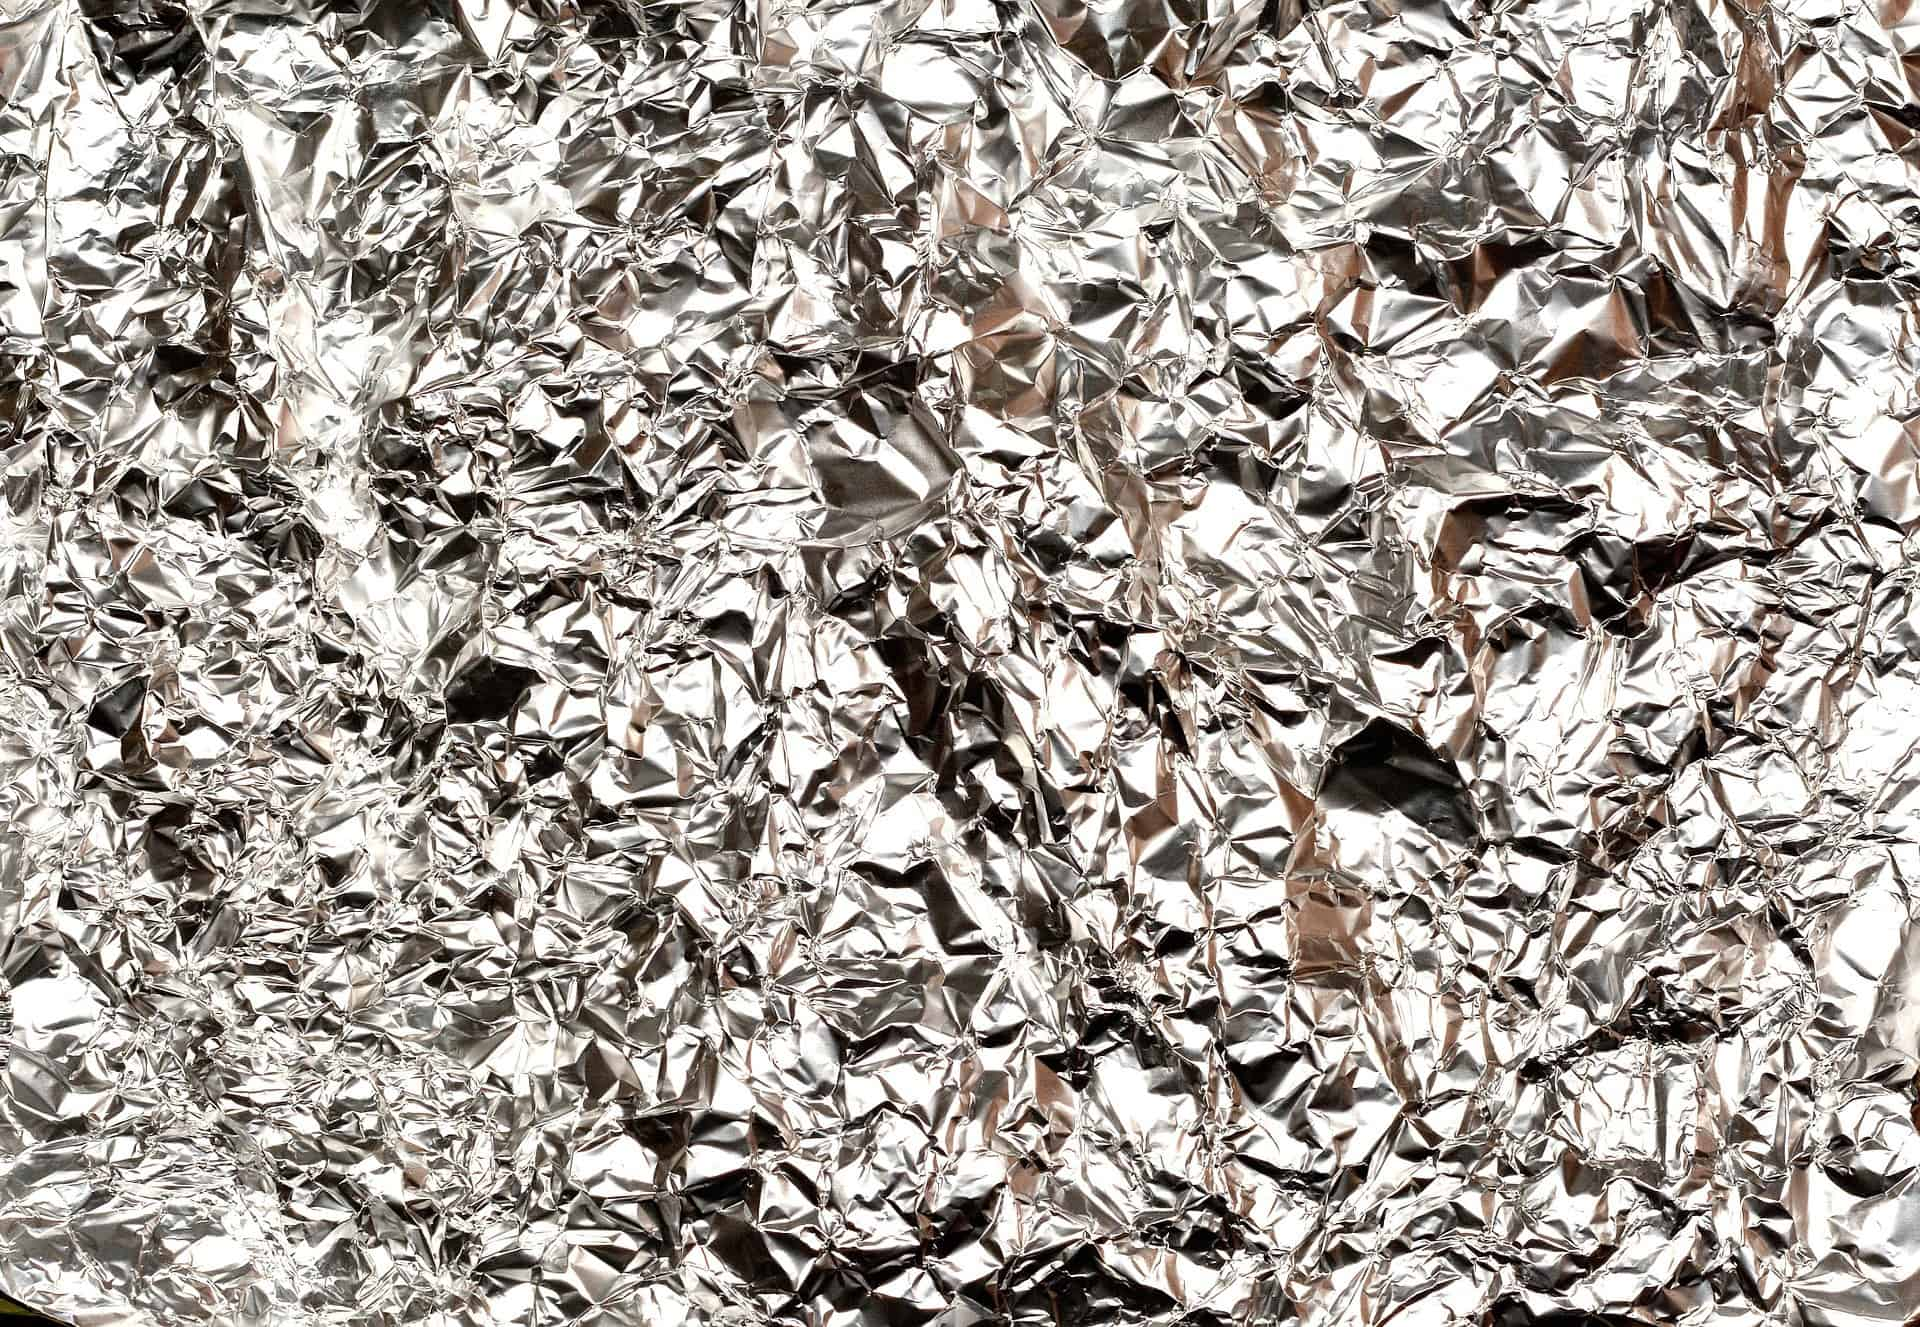 Aluminum Foil Burn Remedy | Outrageous Baking